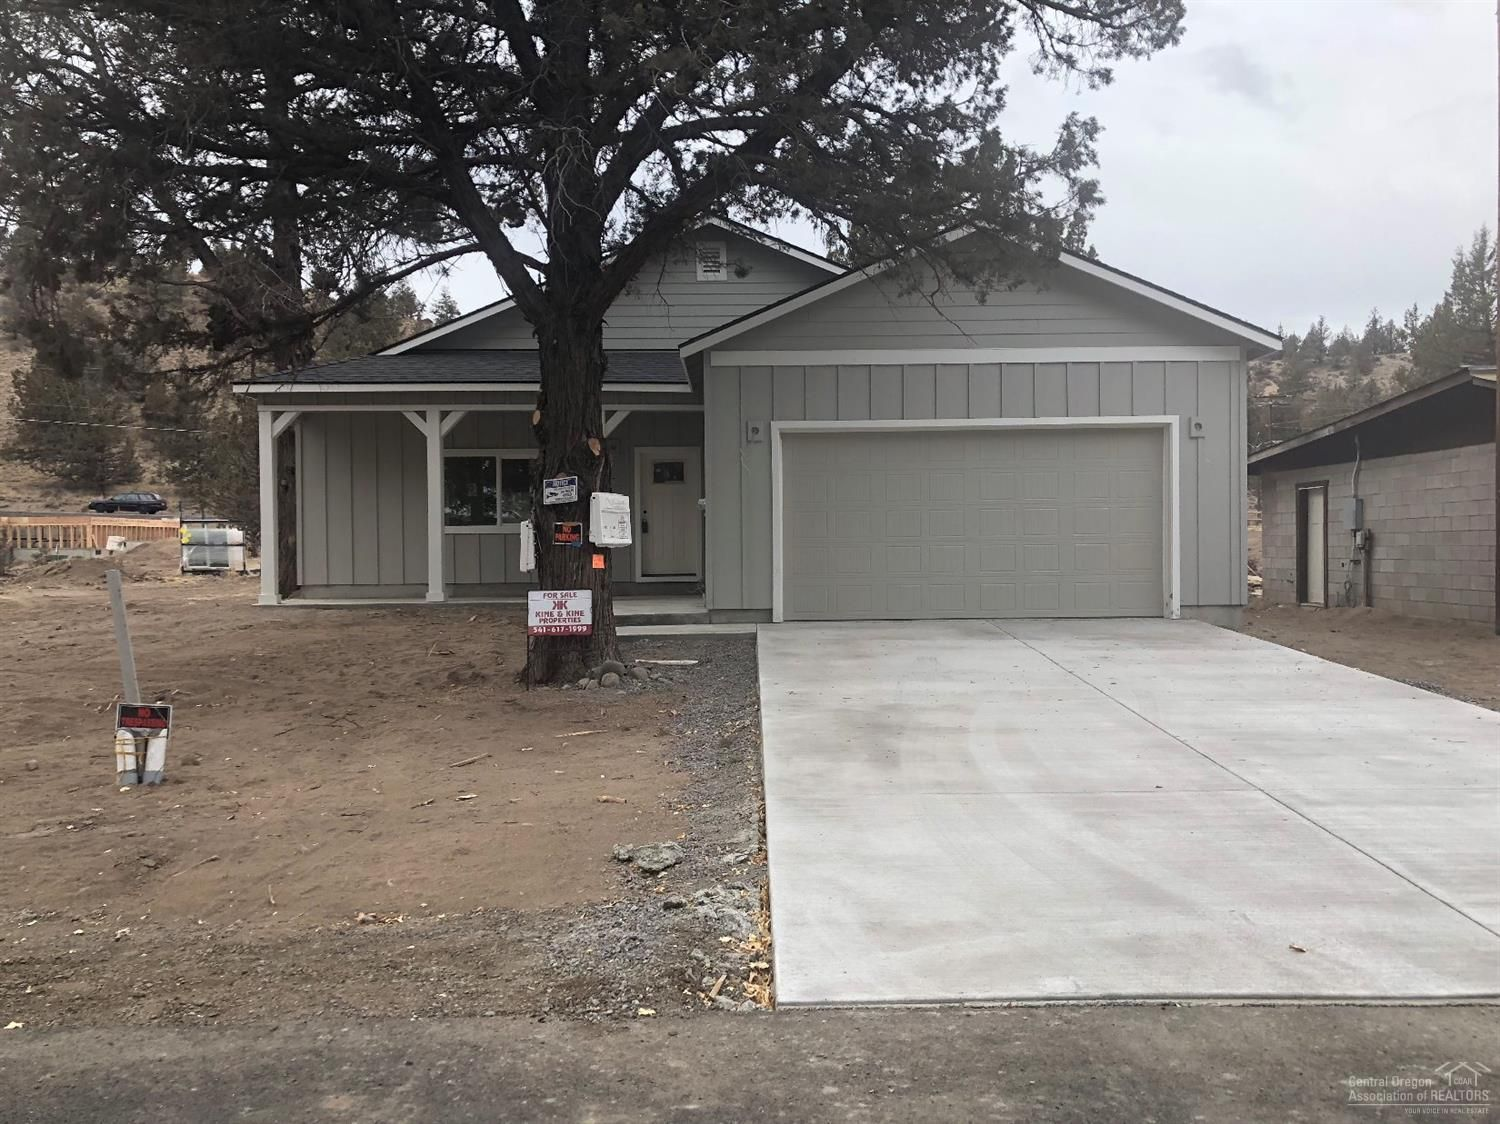 64590 Wood Ave Bend Or 97703 3 Bed 2 Bath Single Family Home Mls 201905069 13 Photos Trulia